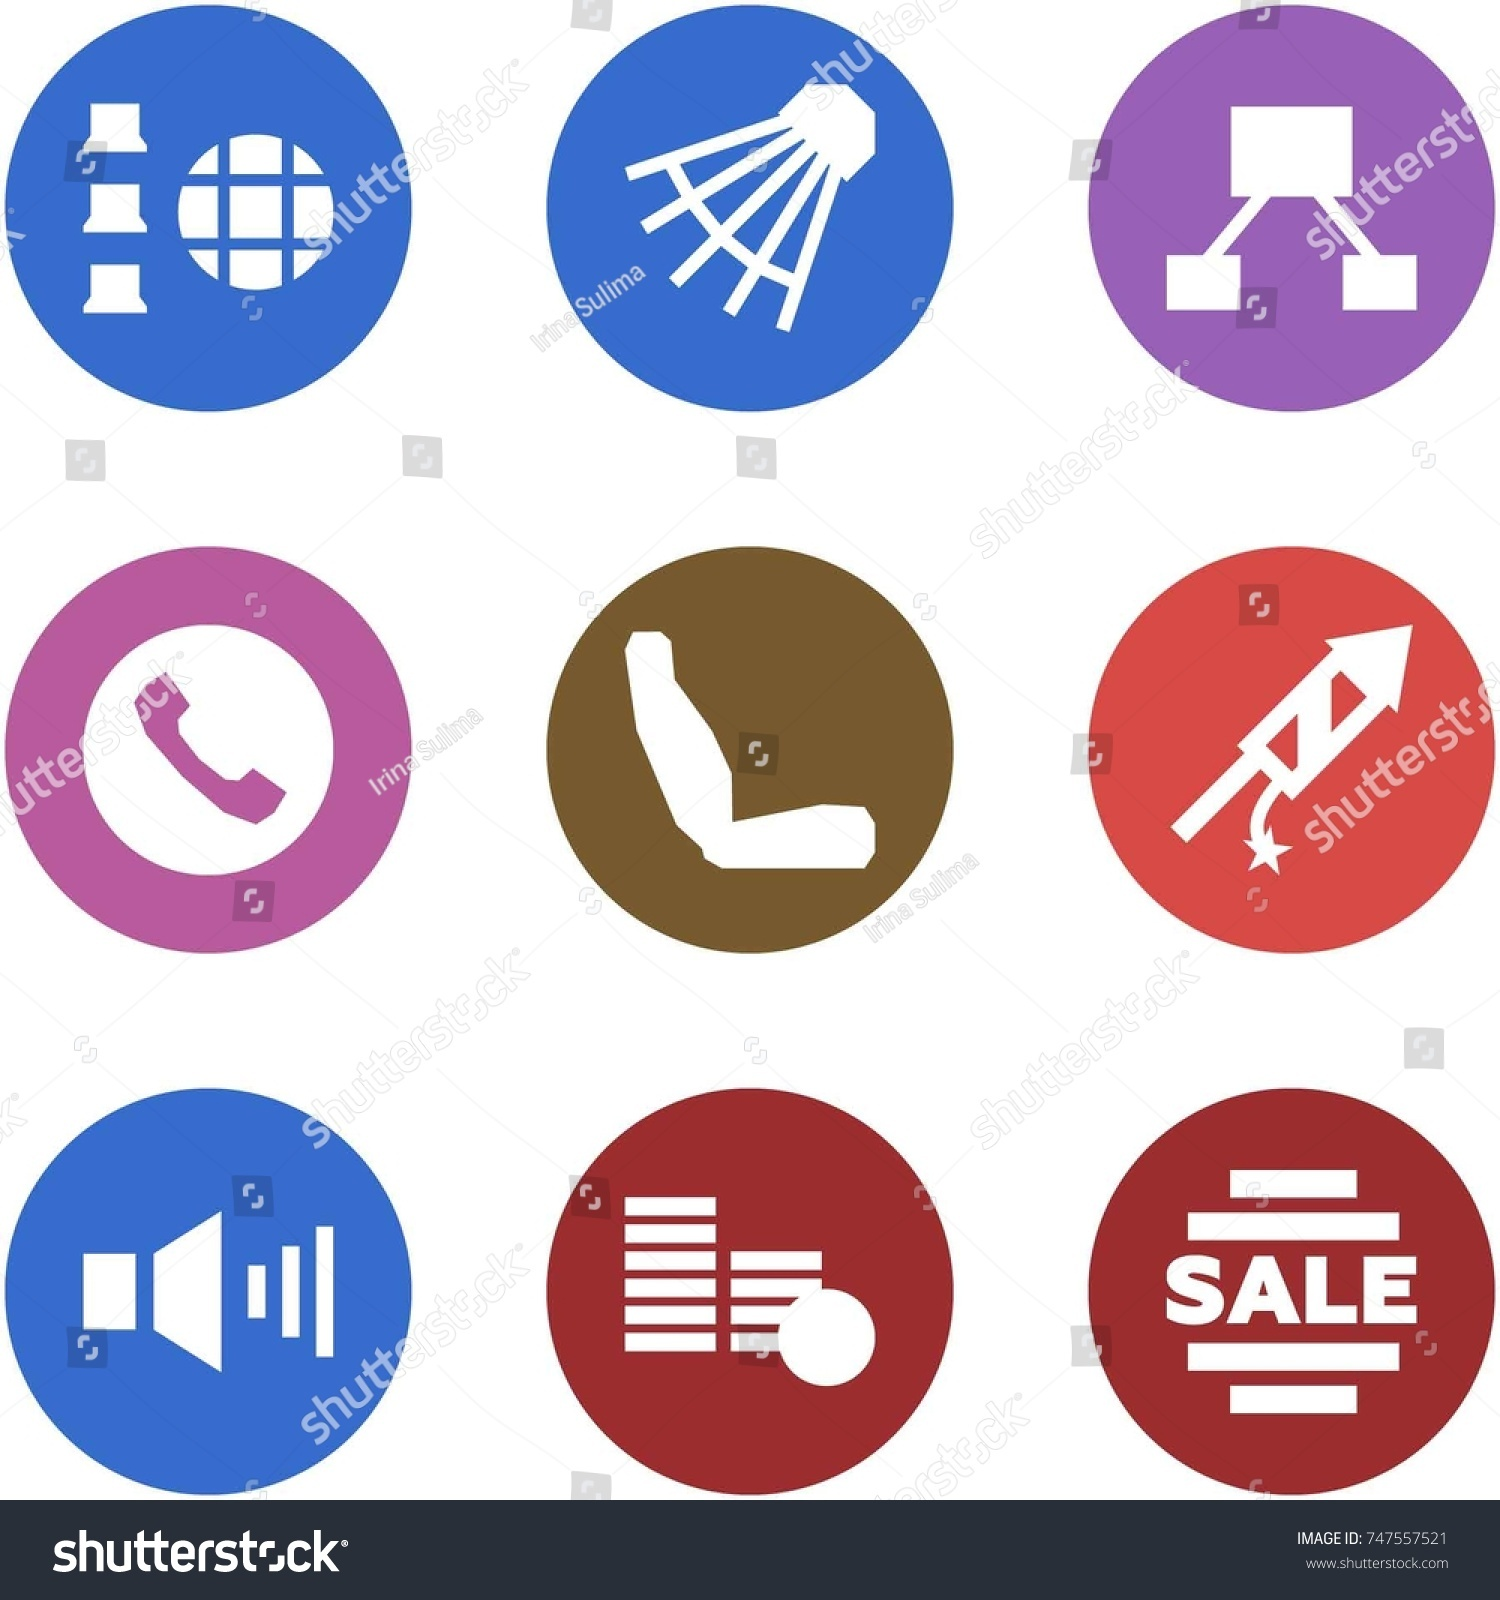 Origami Corner Style Icon Set Network Stock Vector Royalty Free Fireworks Diagram Shuttlecock Hierarchy Phone Seat